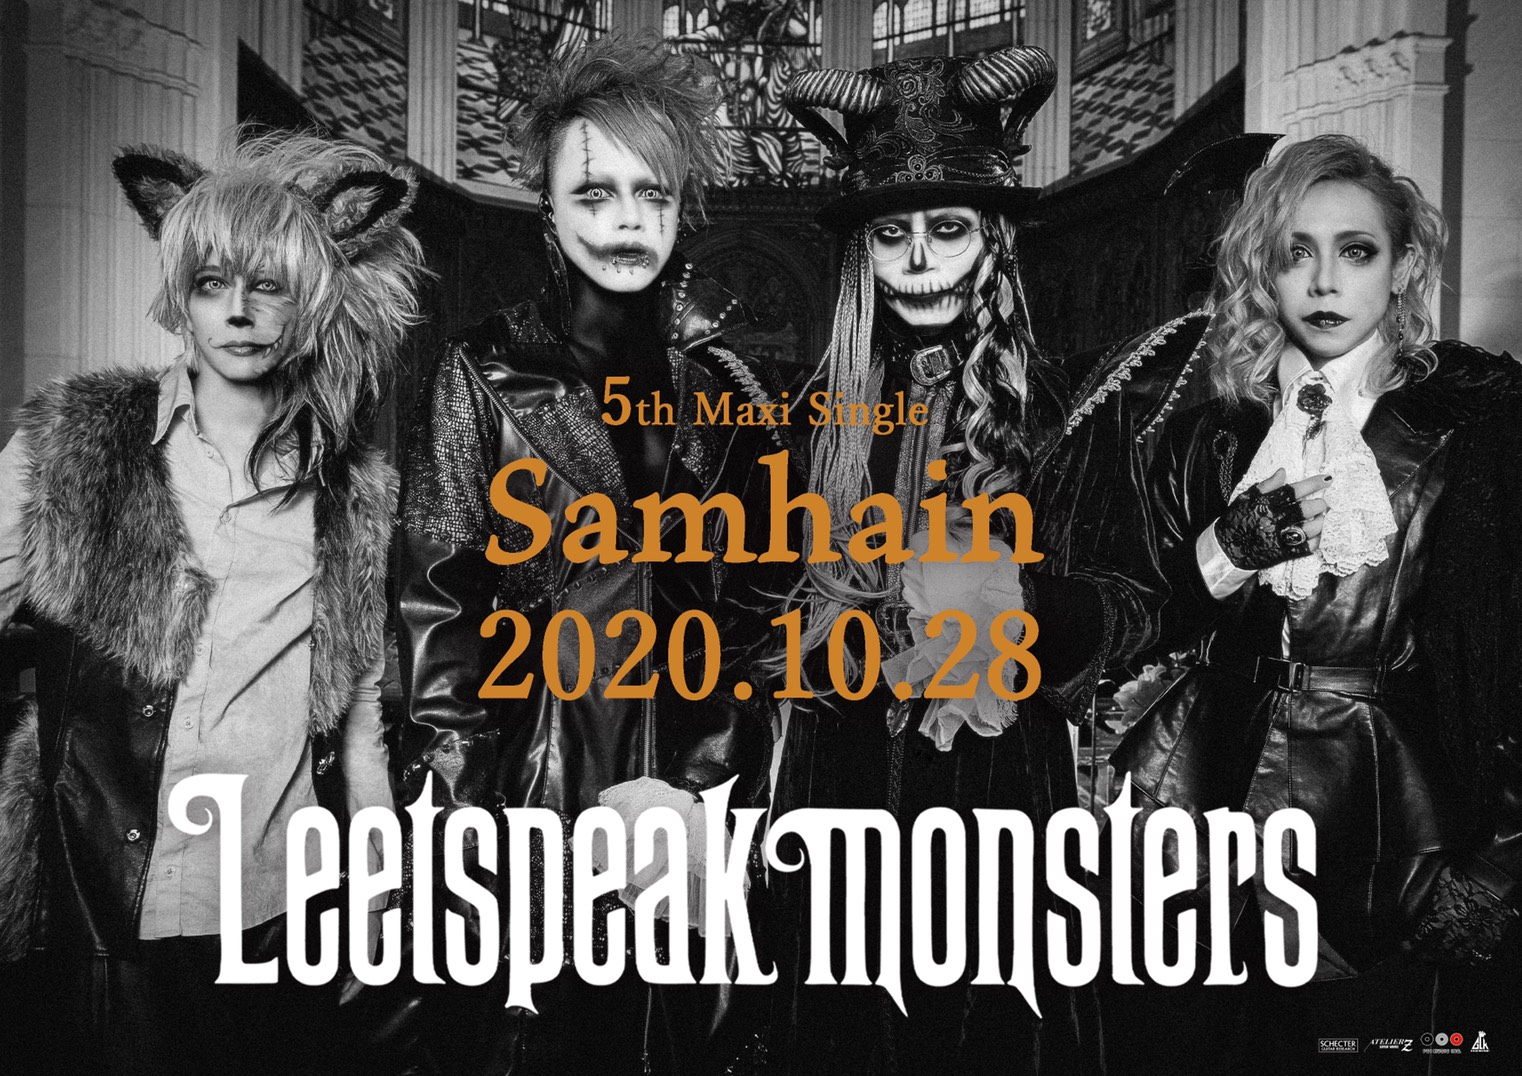 Leetspeak monsters最新告知画像